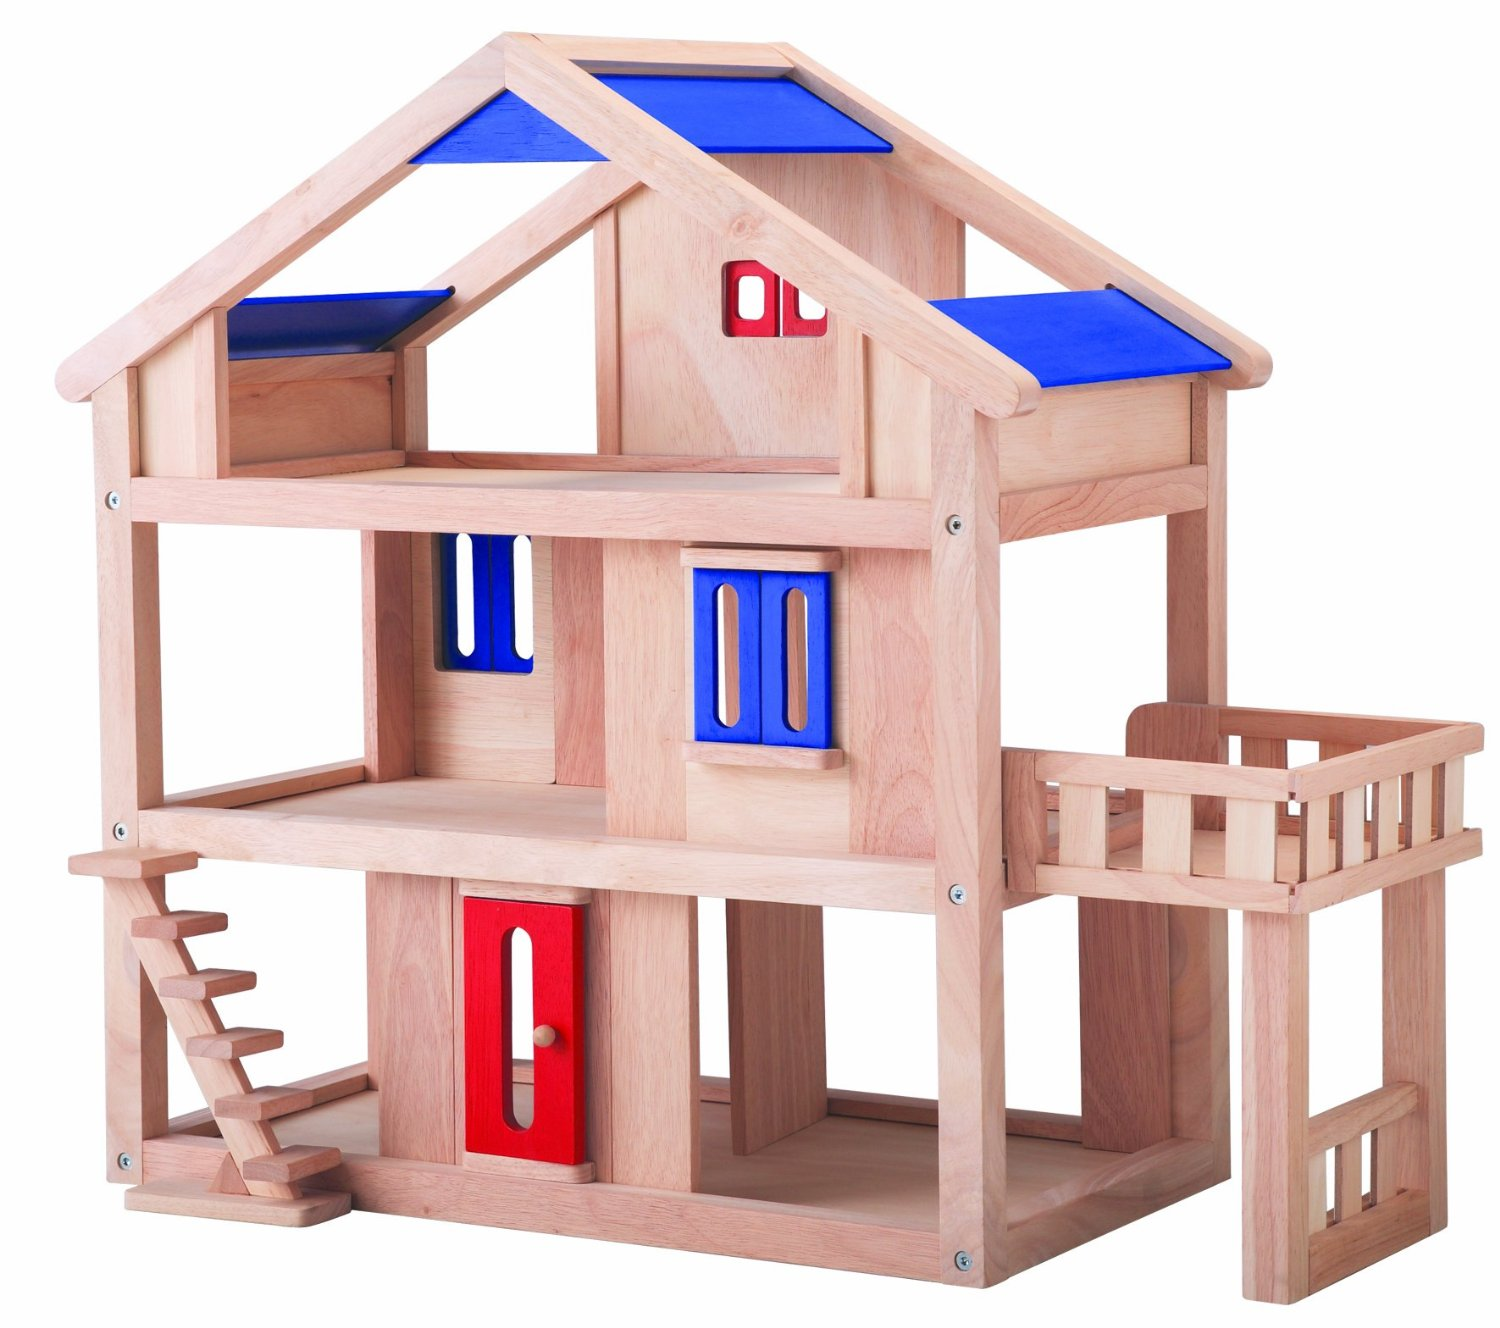 Plan Toys Dollhouse Review